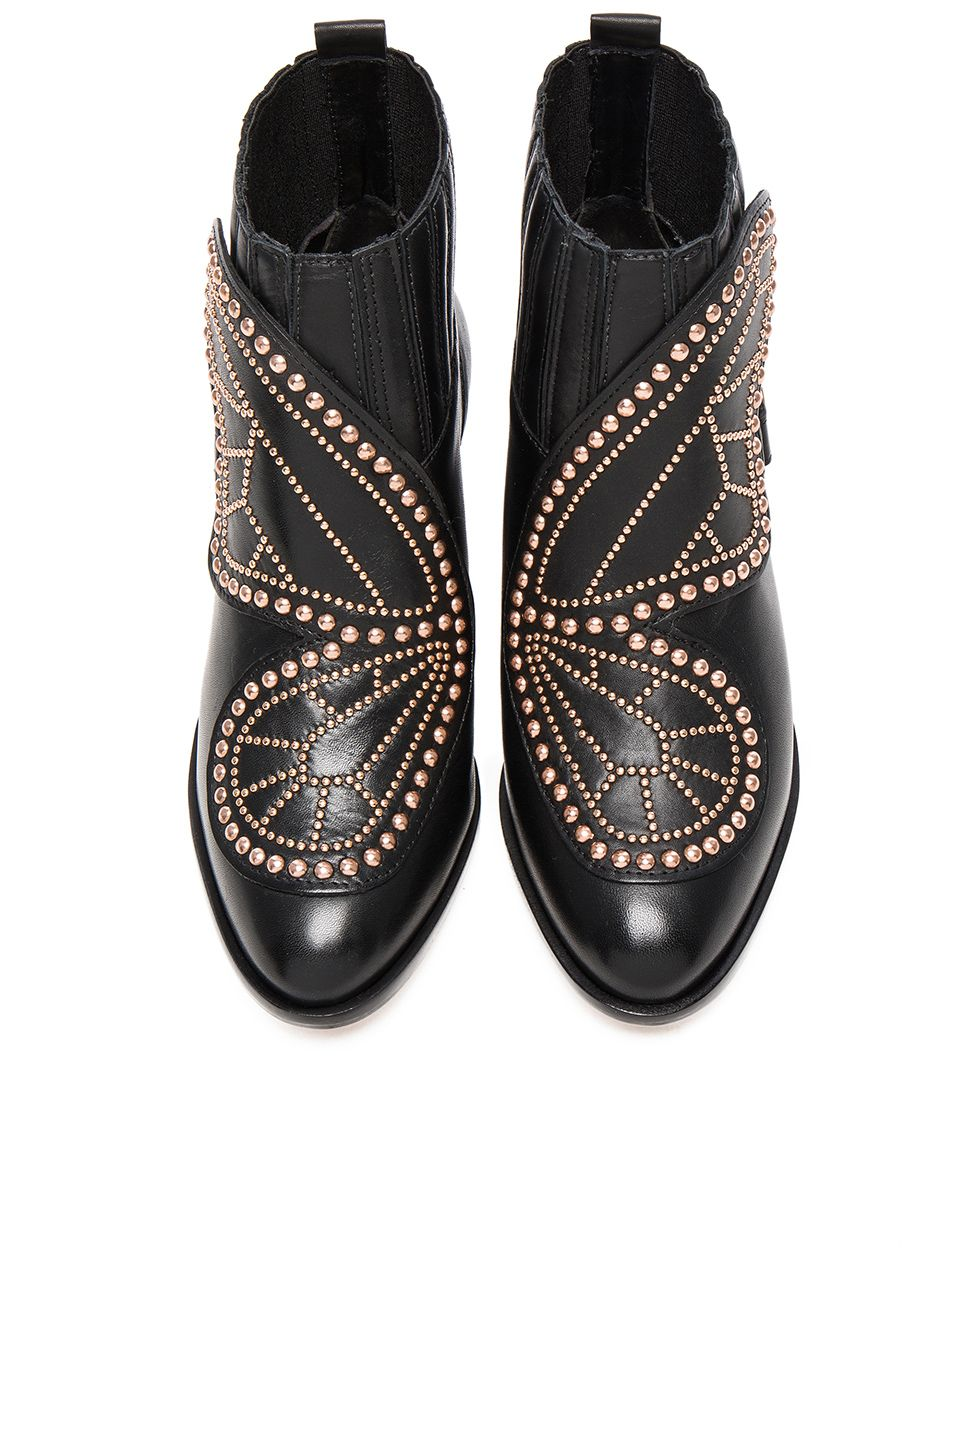 0a97177d828 Image 1 of Sophia Webster Karina Butterfly Boots in Black